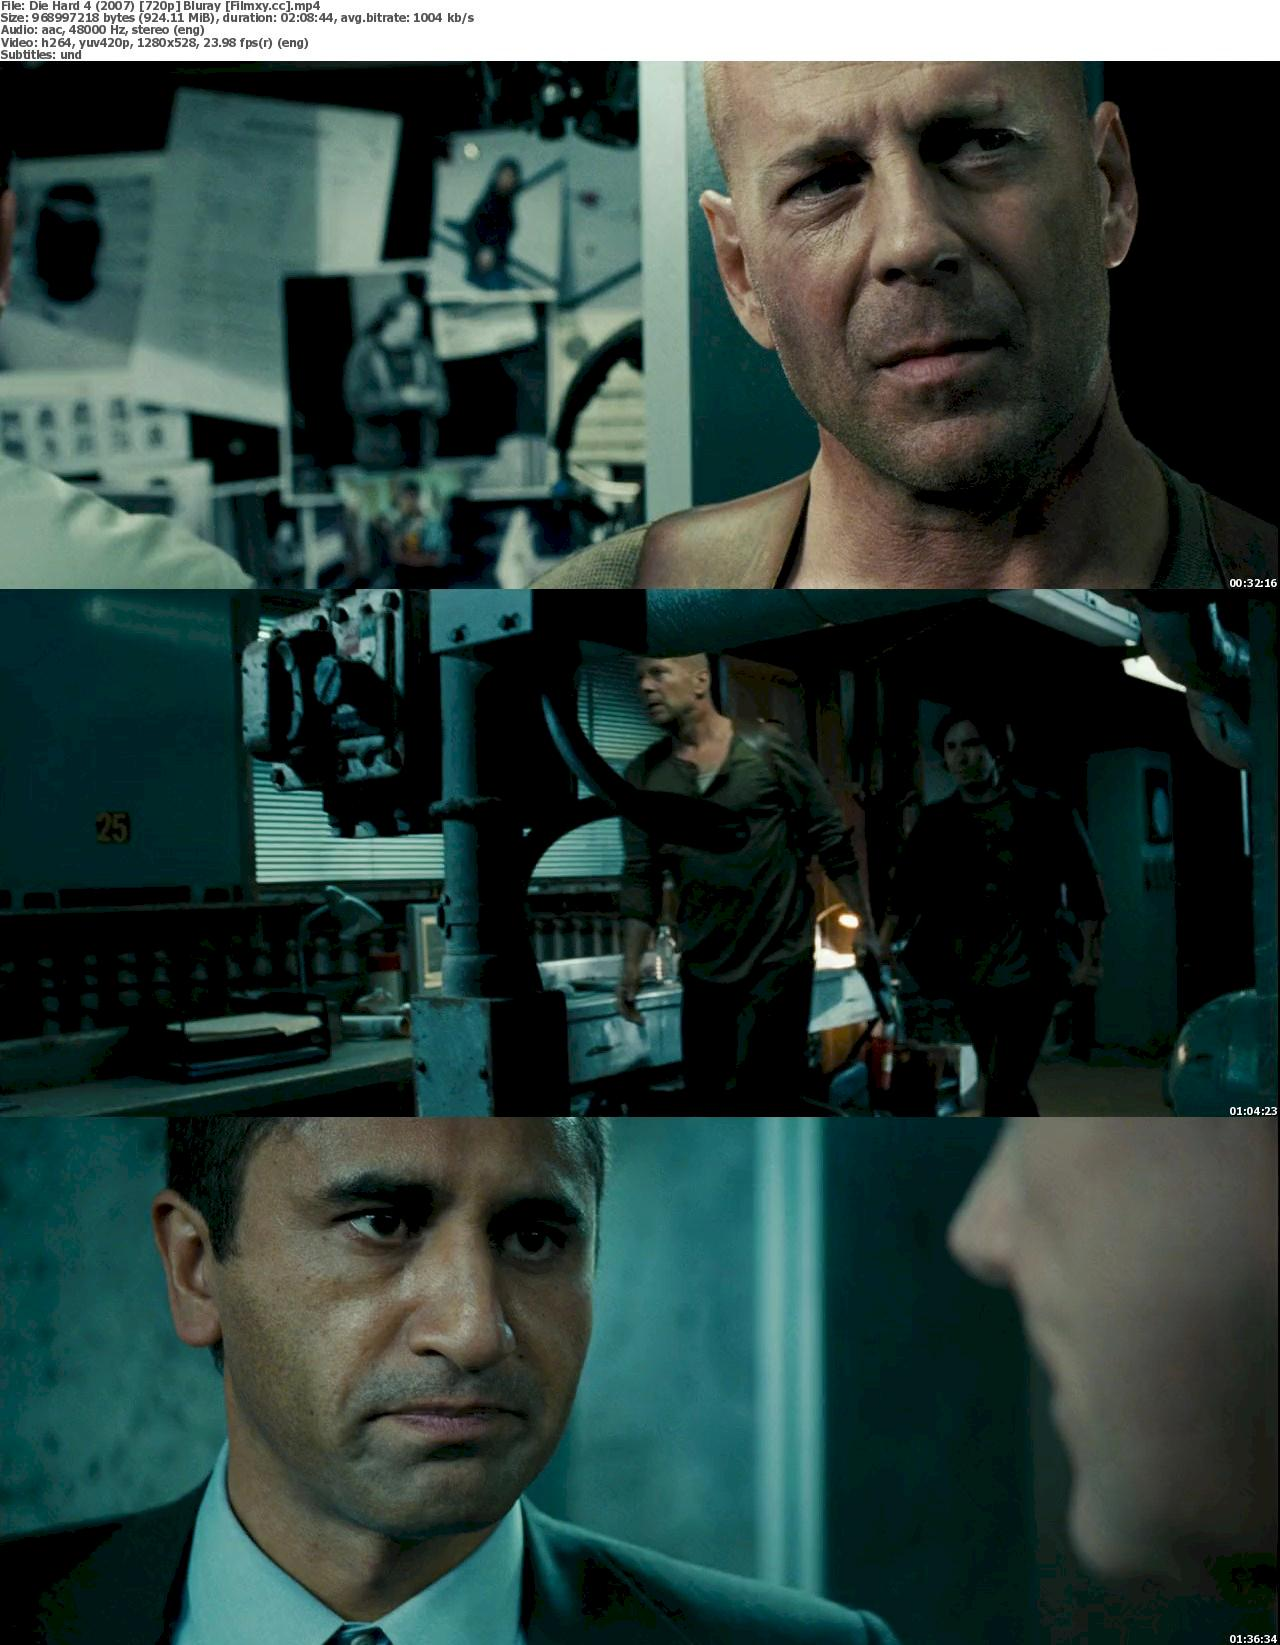 Die Hard 4 (2007) 720p & 1080p Bluray Free Download 720p Screenshot